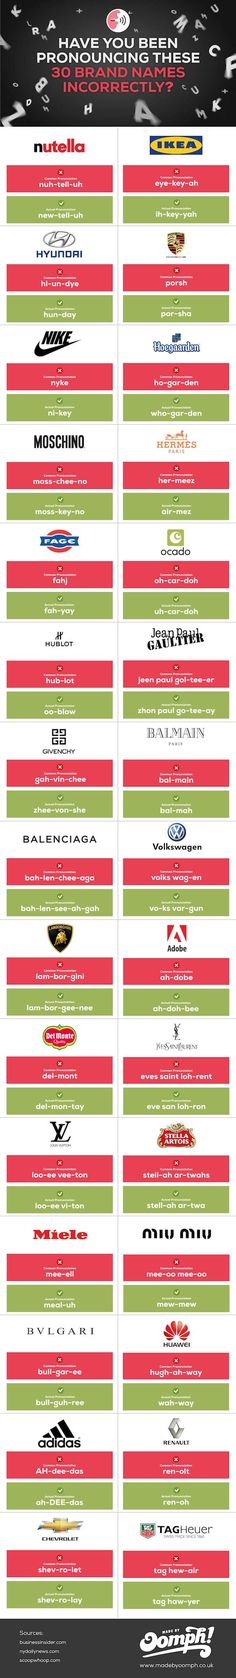 30 Famous Brand Names You're Probably Pronouncing Wrong | #infographic via @HubSpot